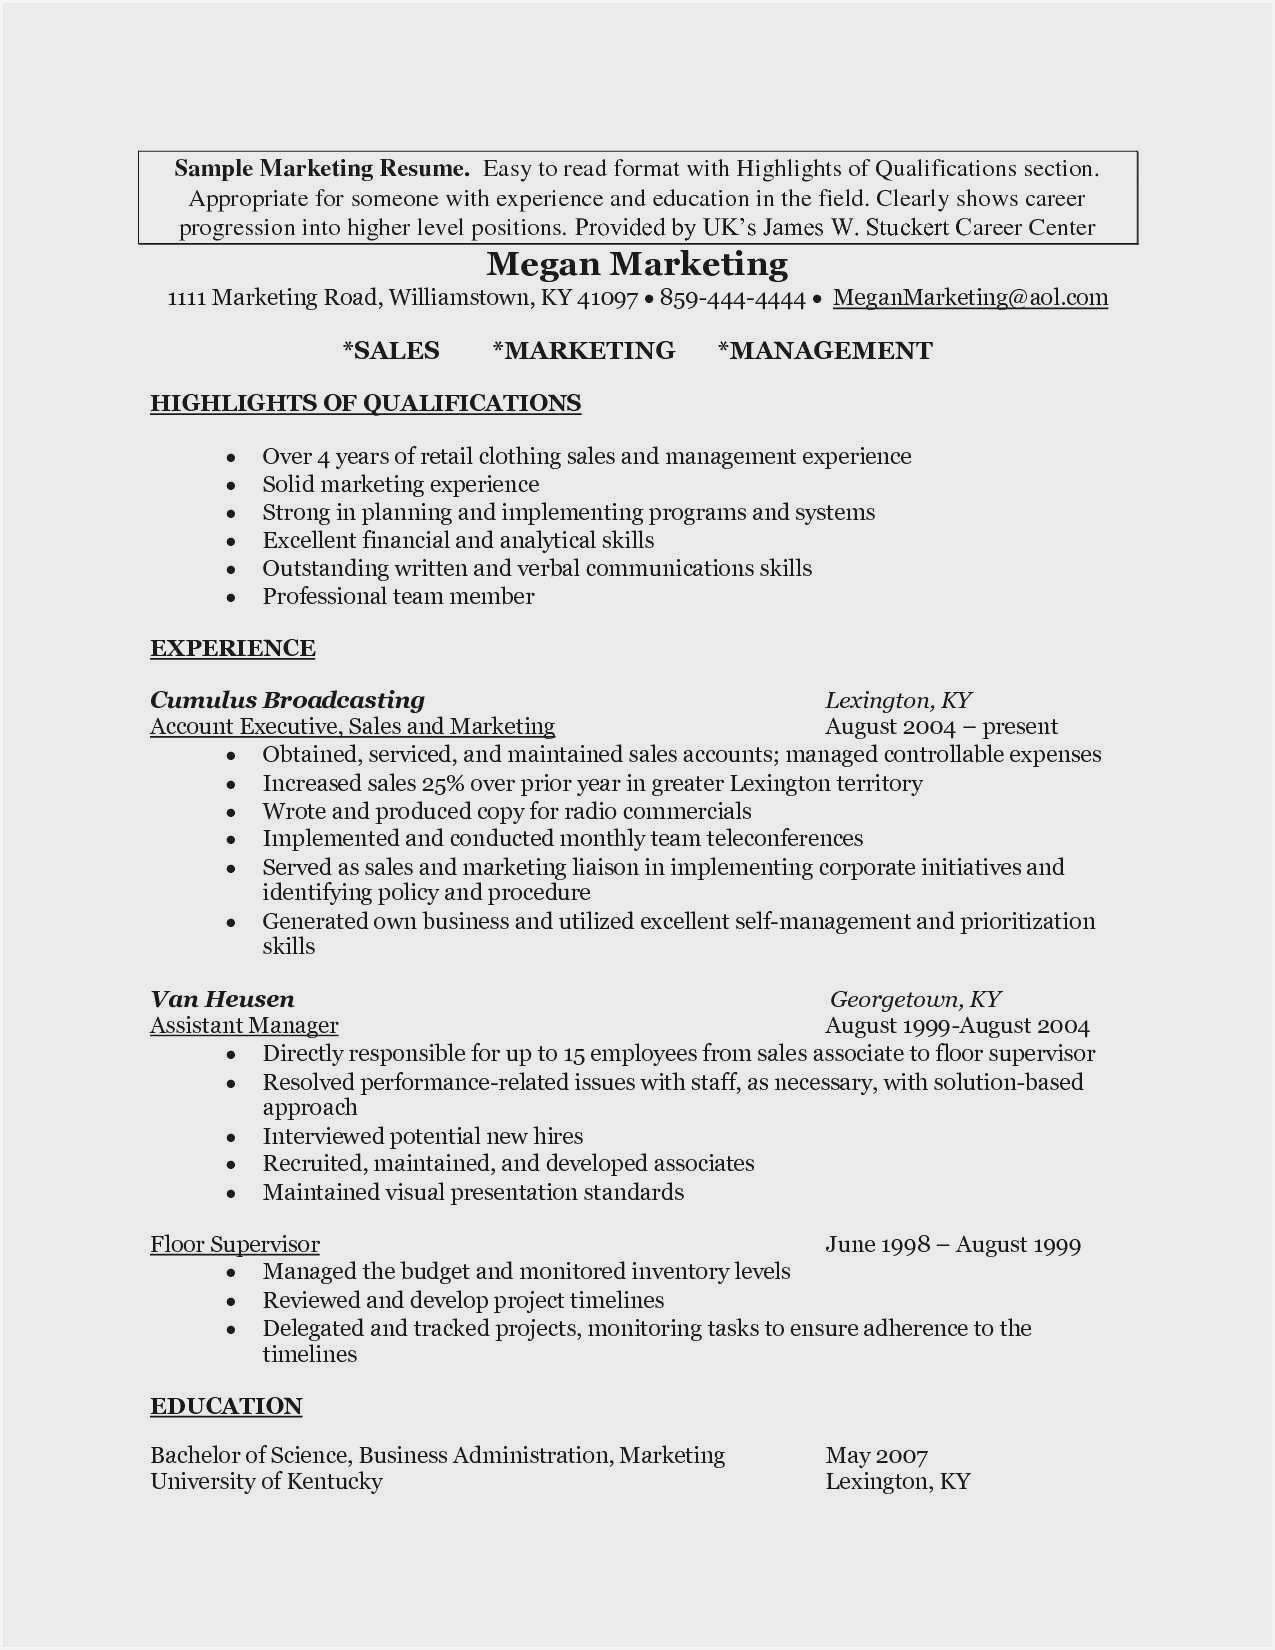 accounting resume cover letter samples free sample fresh graduate accountant professional Resume Fresh Graduate Accountant Resume